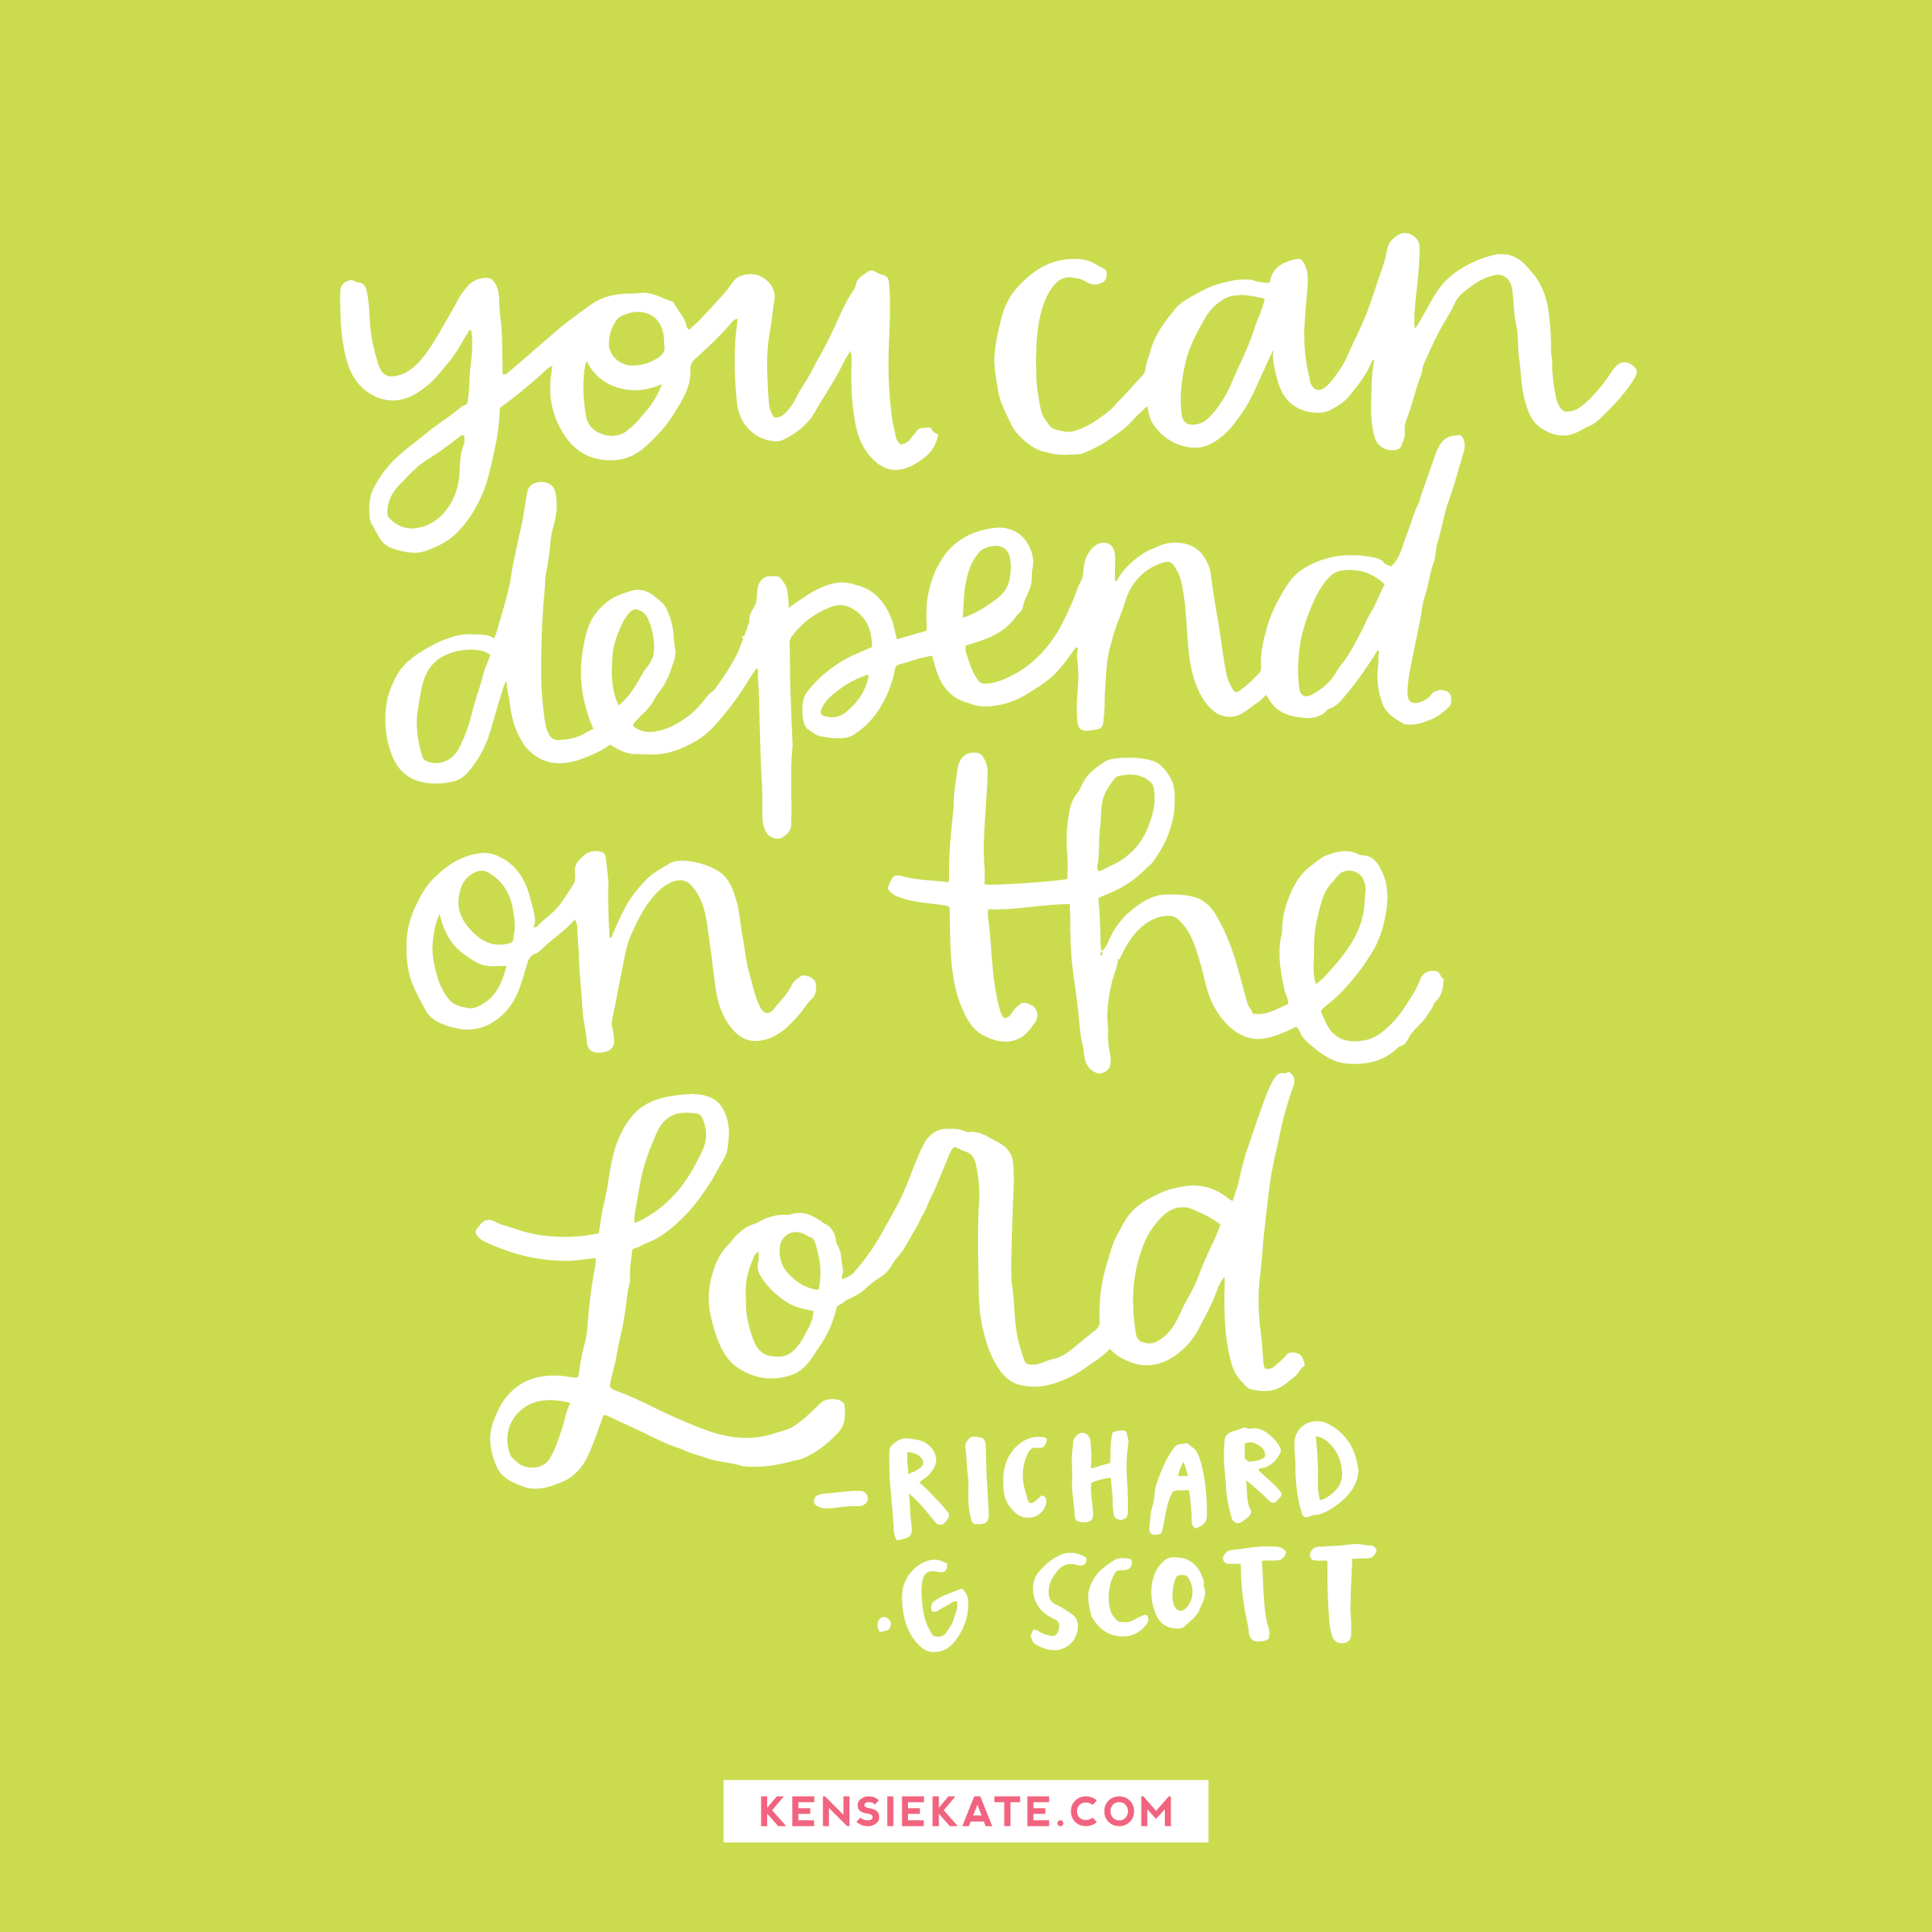 You can depend on the Lord!